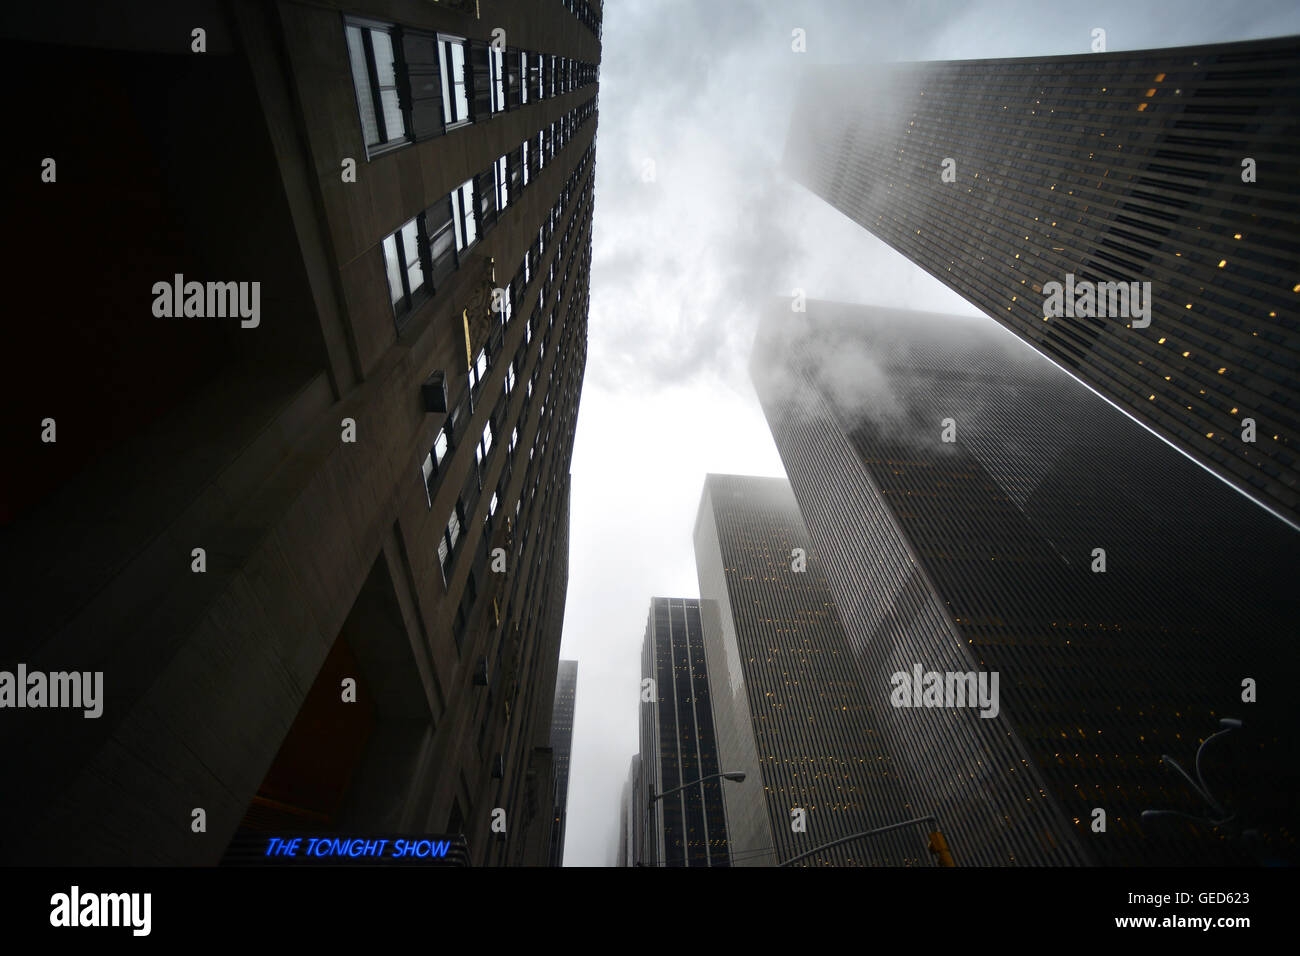 The Tonight Show sign in a bleak New York, with skyscrapers and steam - Stock Image